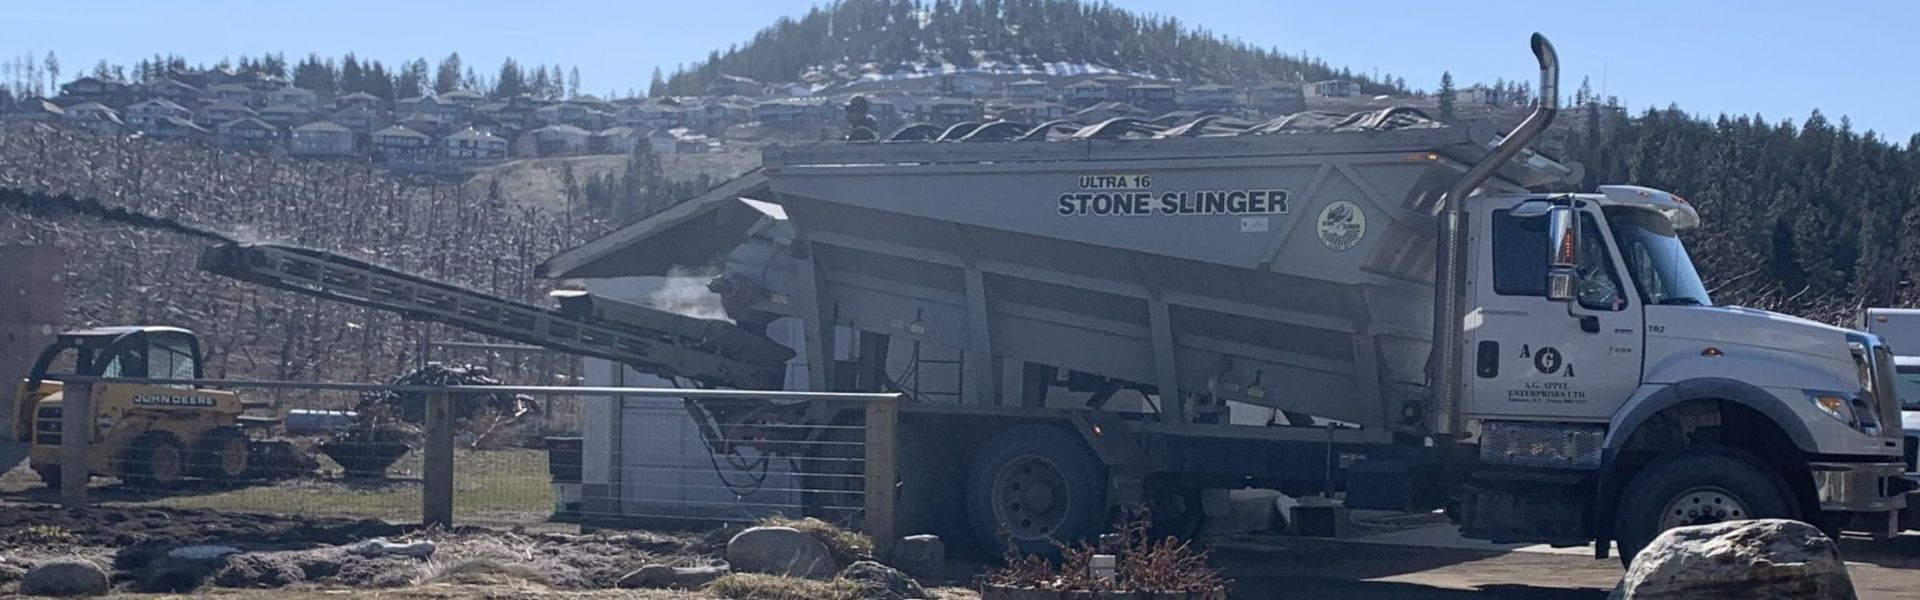 Kelowna Stoneslinger placing Topsoil in Garden